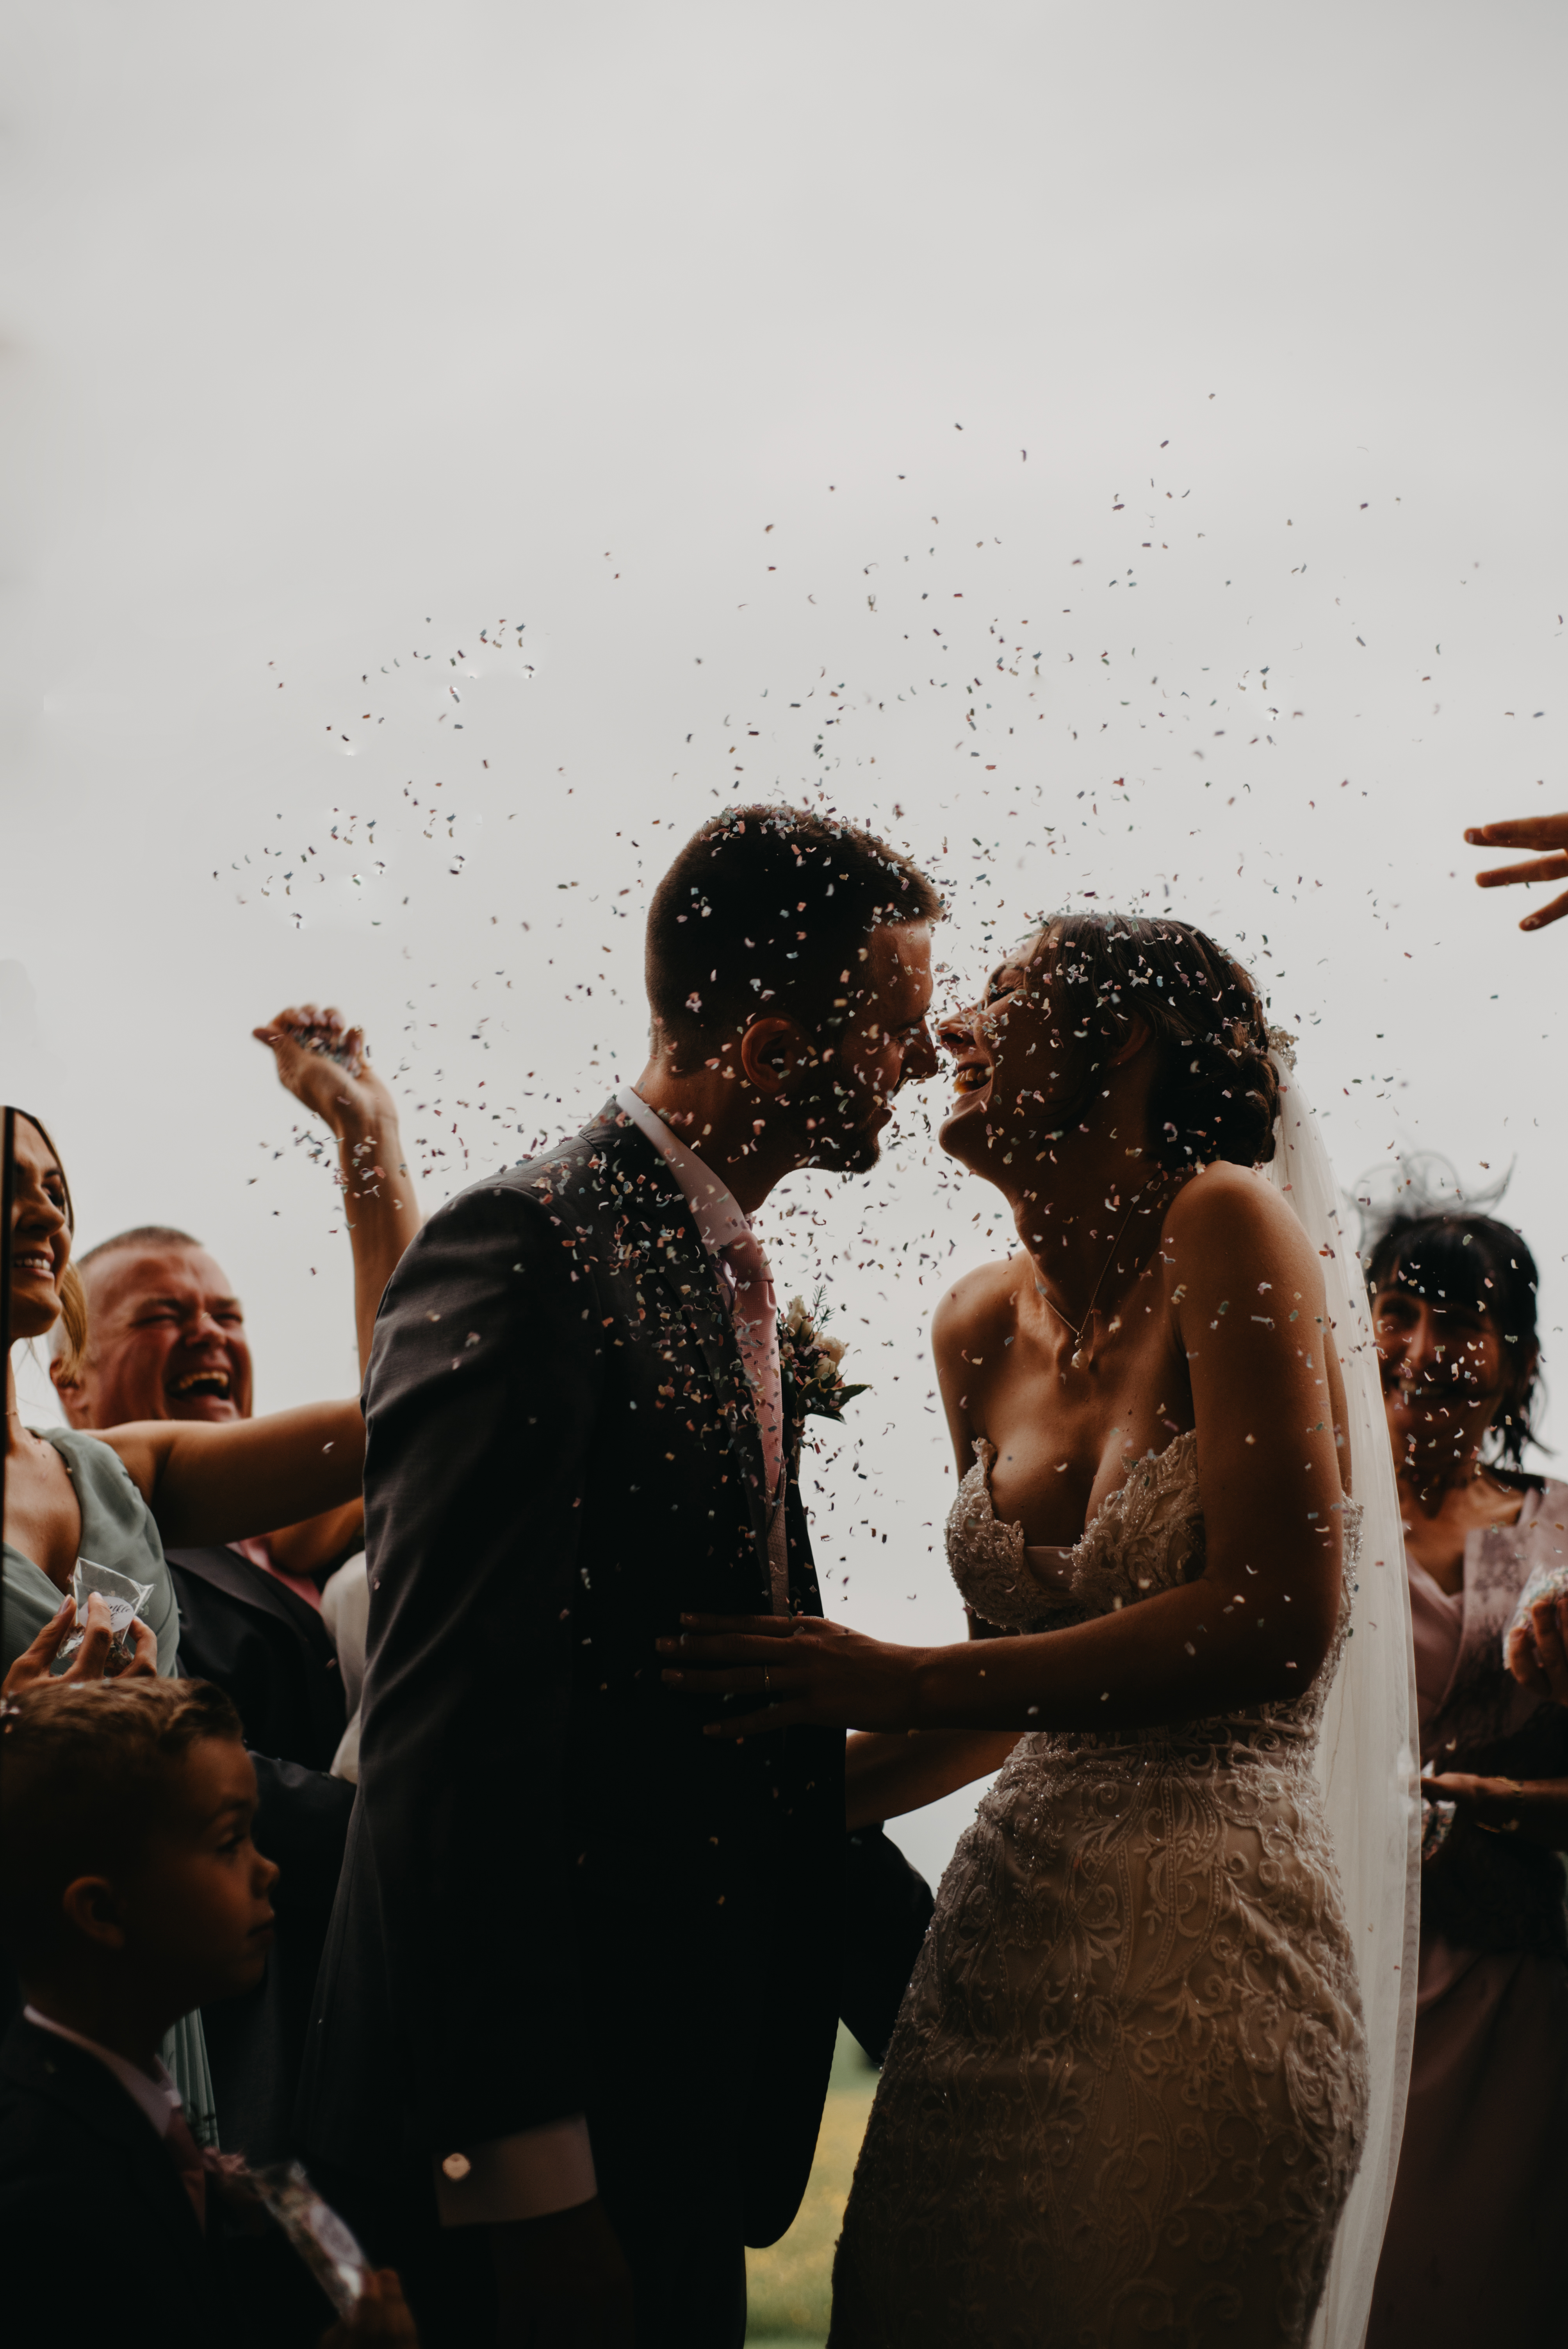 A bridal couples laughs as guests throw confetti on them